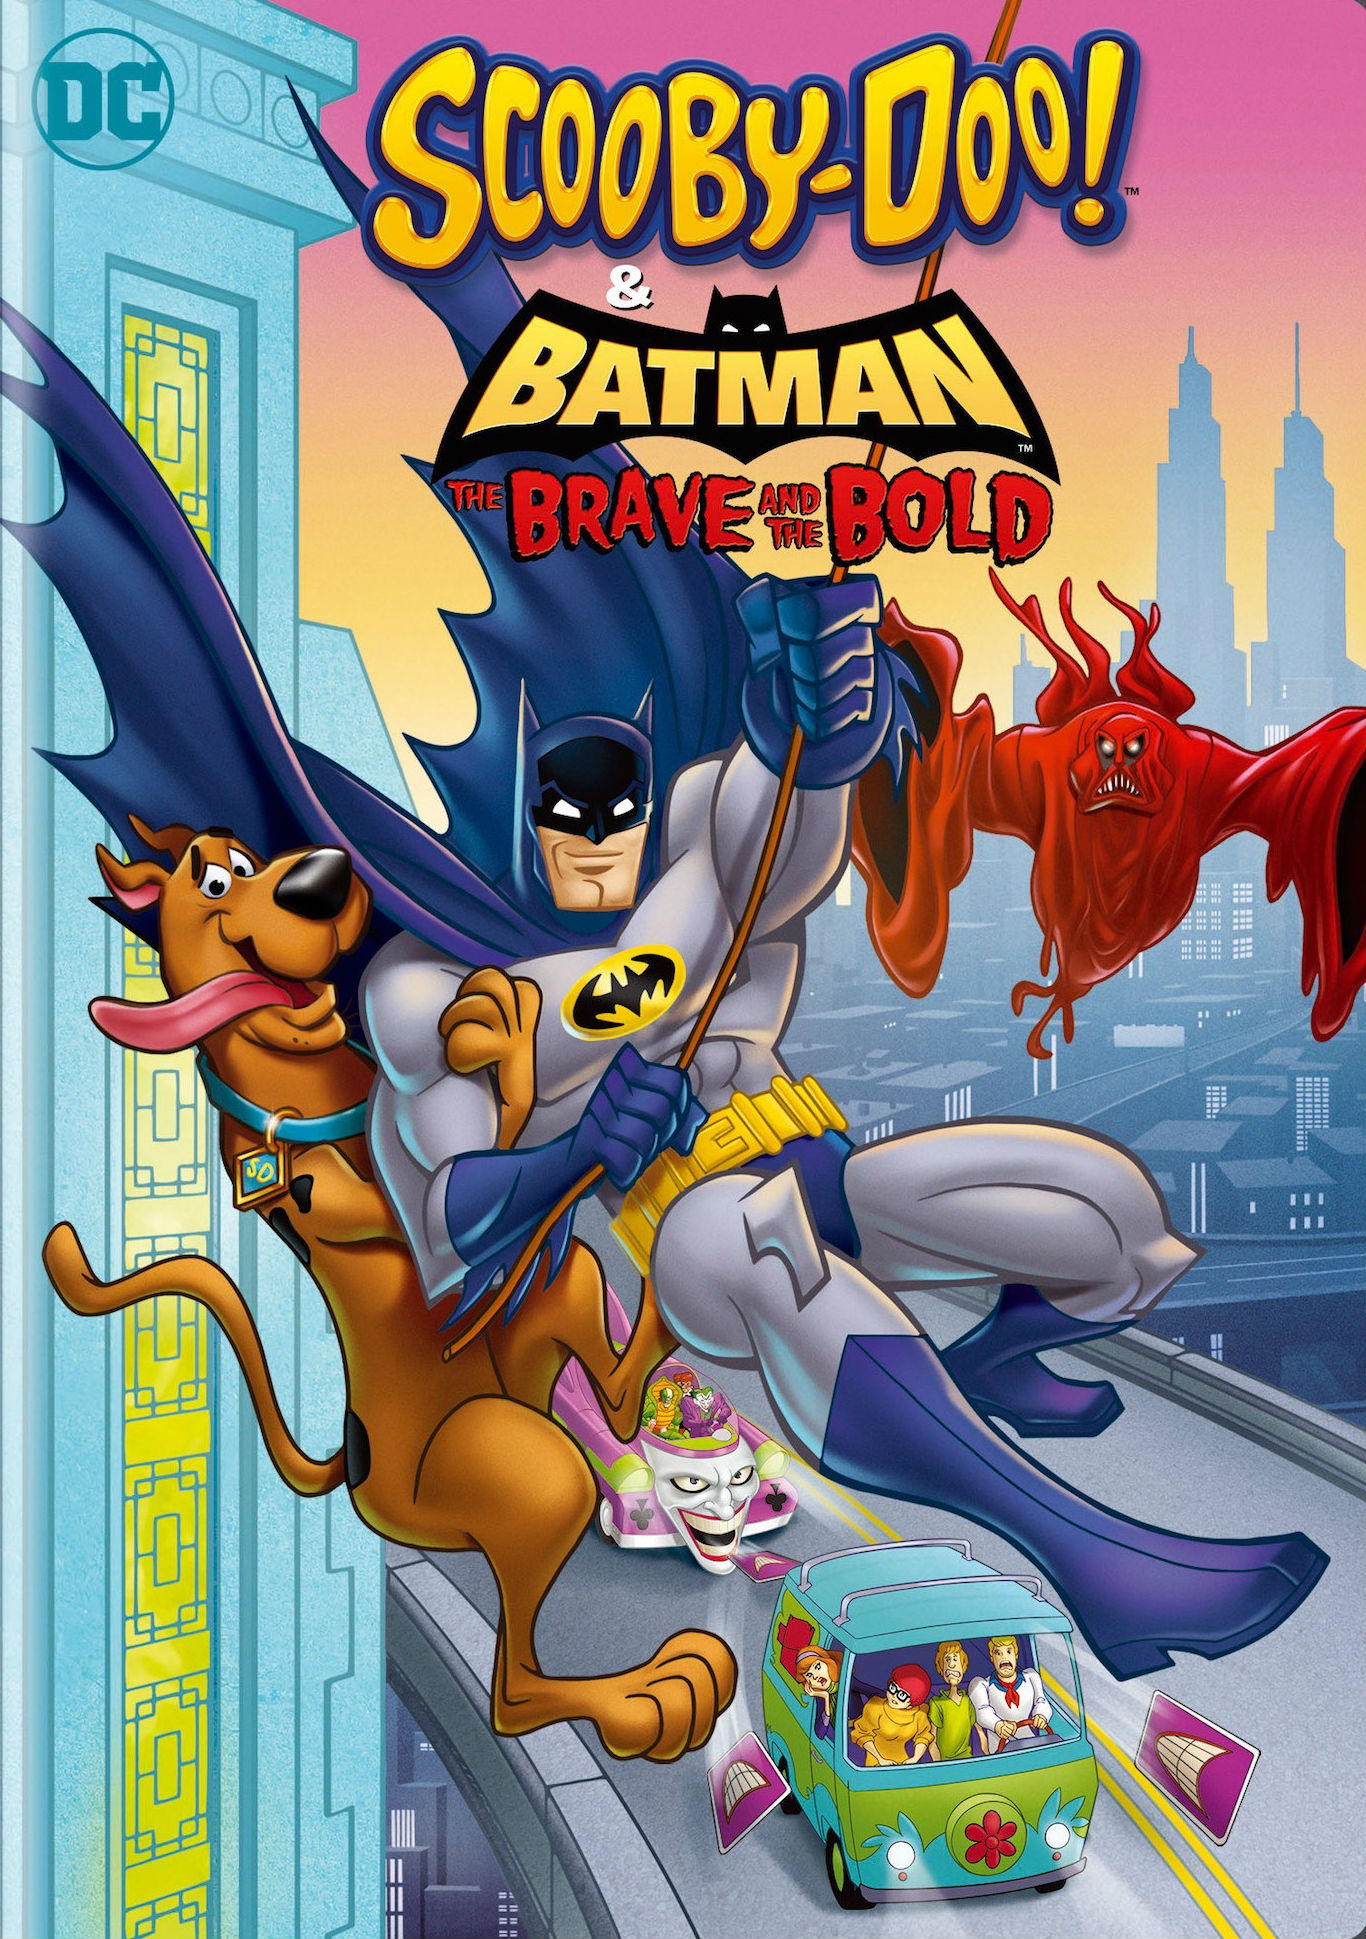 Scooby-Doo & Batman The Brave and the Bold (2018)